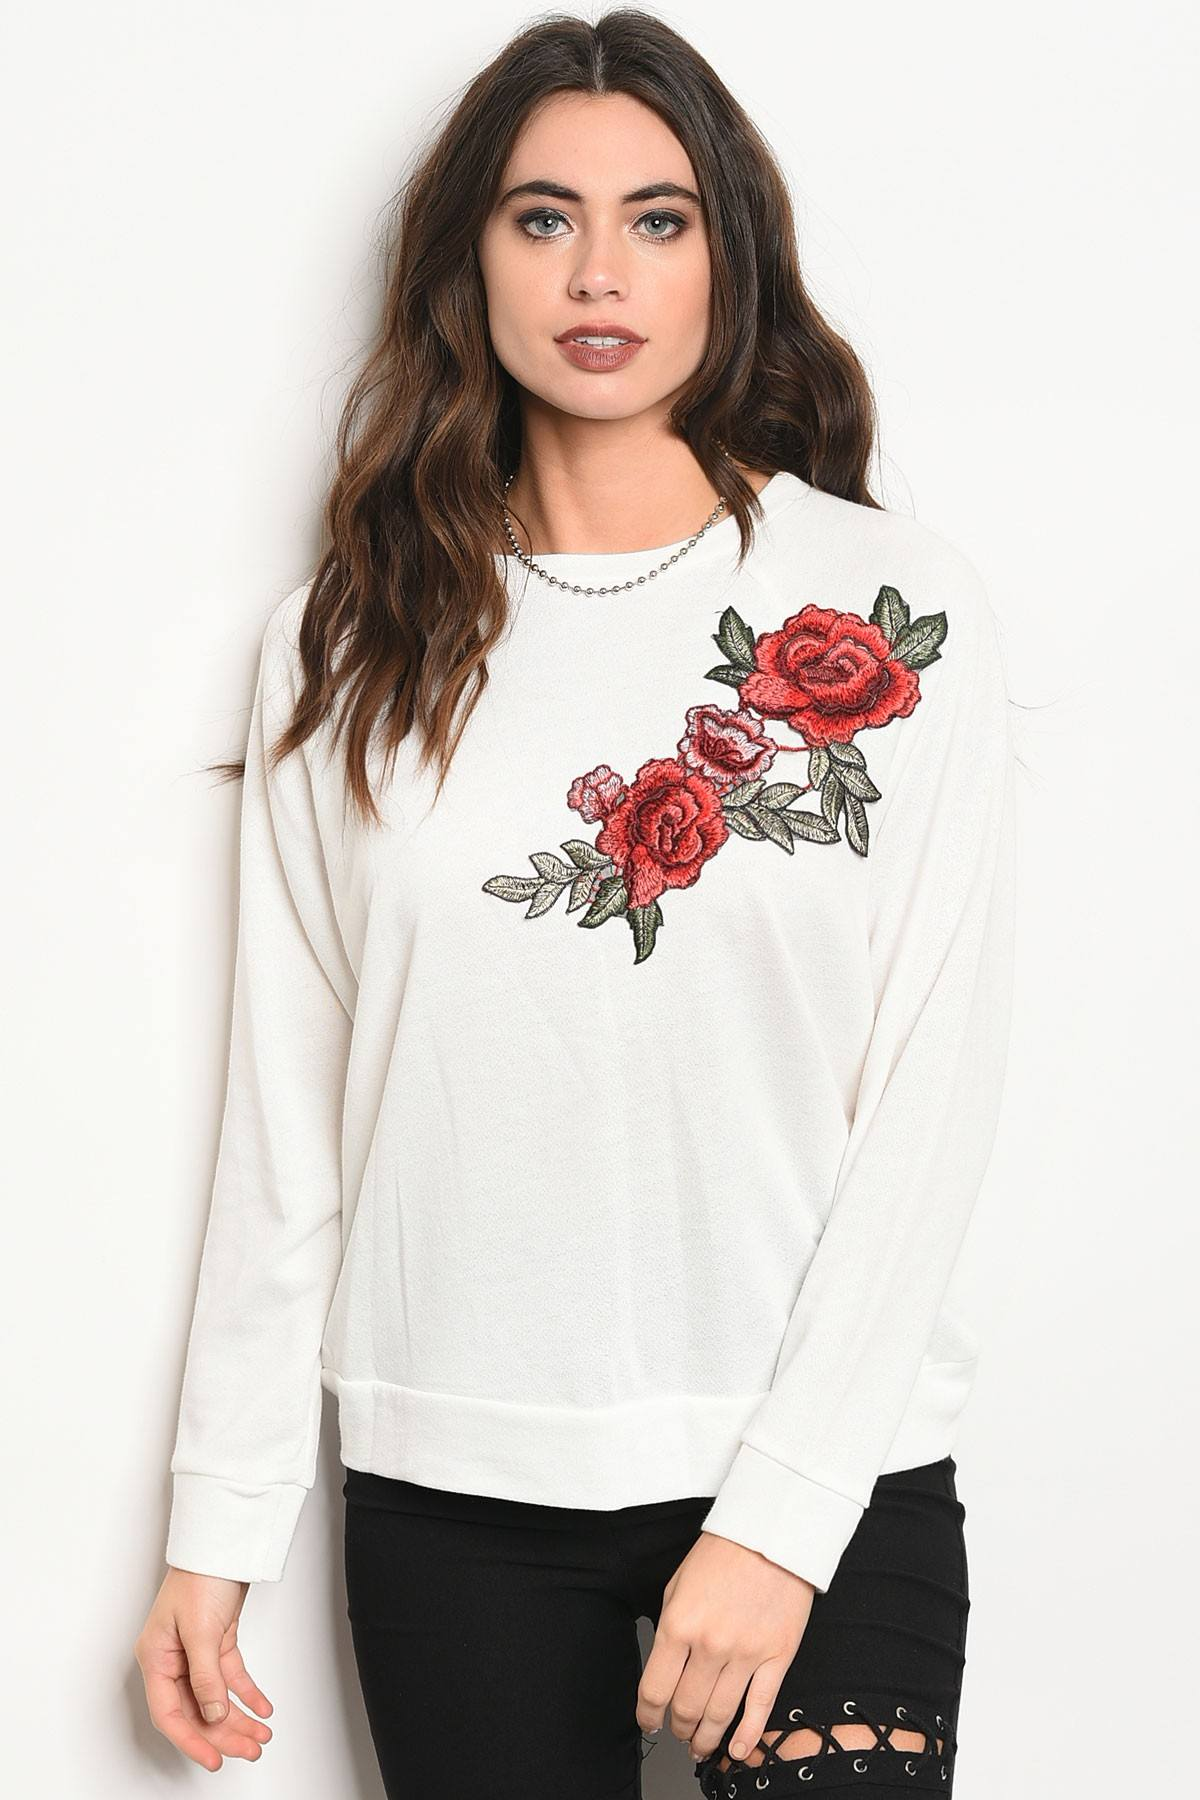 Ladies fashion long sleeve light weight knit top with a crew neckline and floral patch details-S-MY UPSCALE STORE